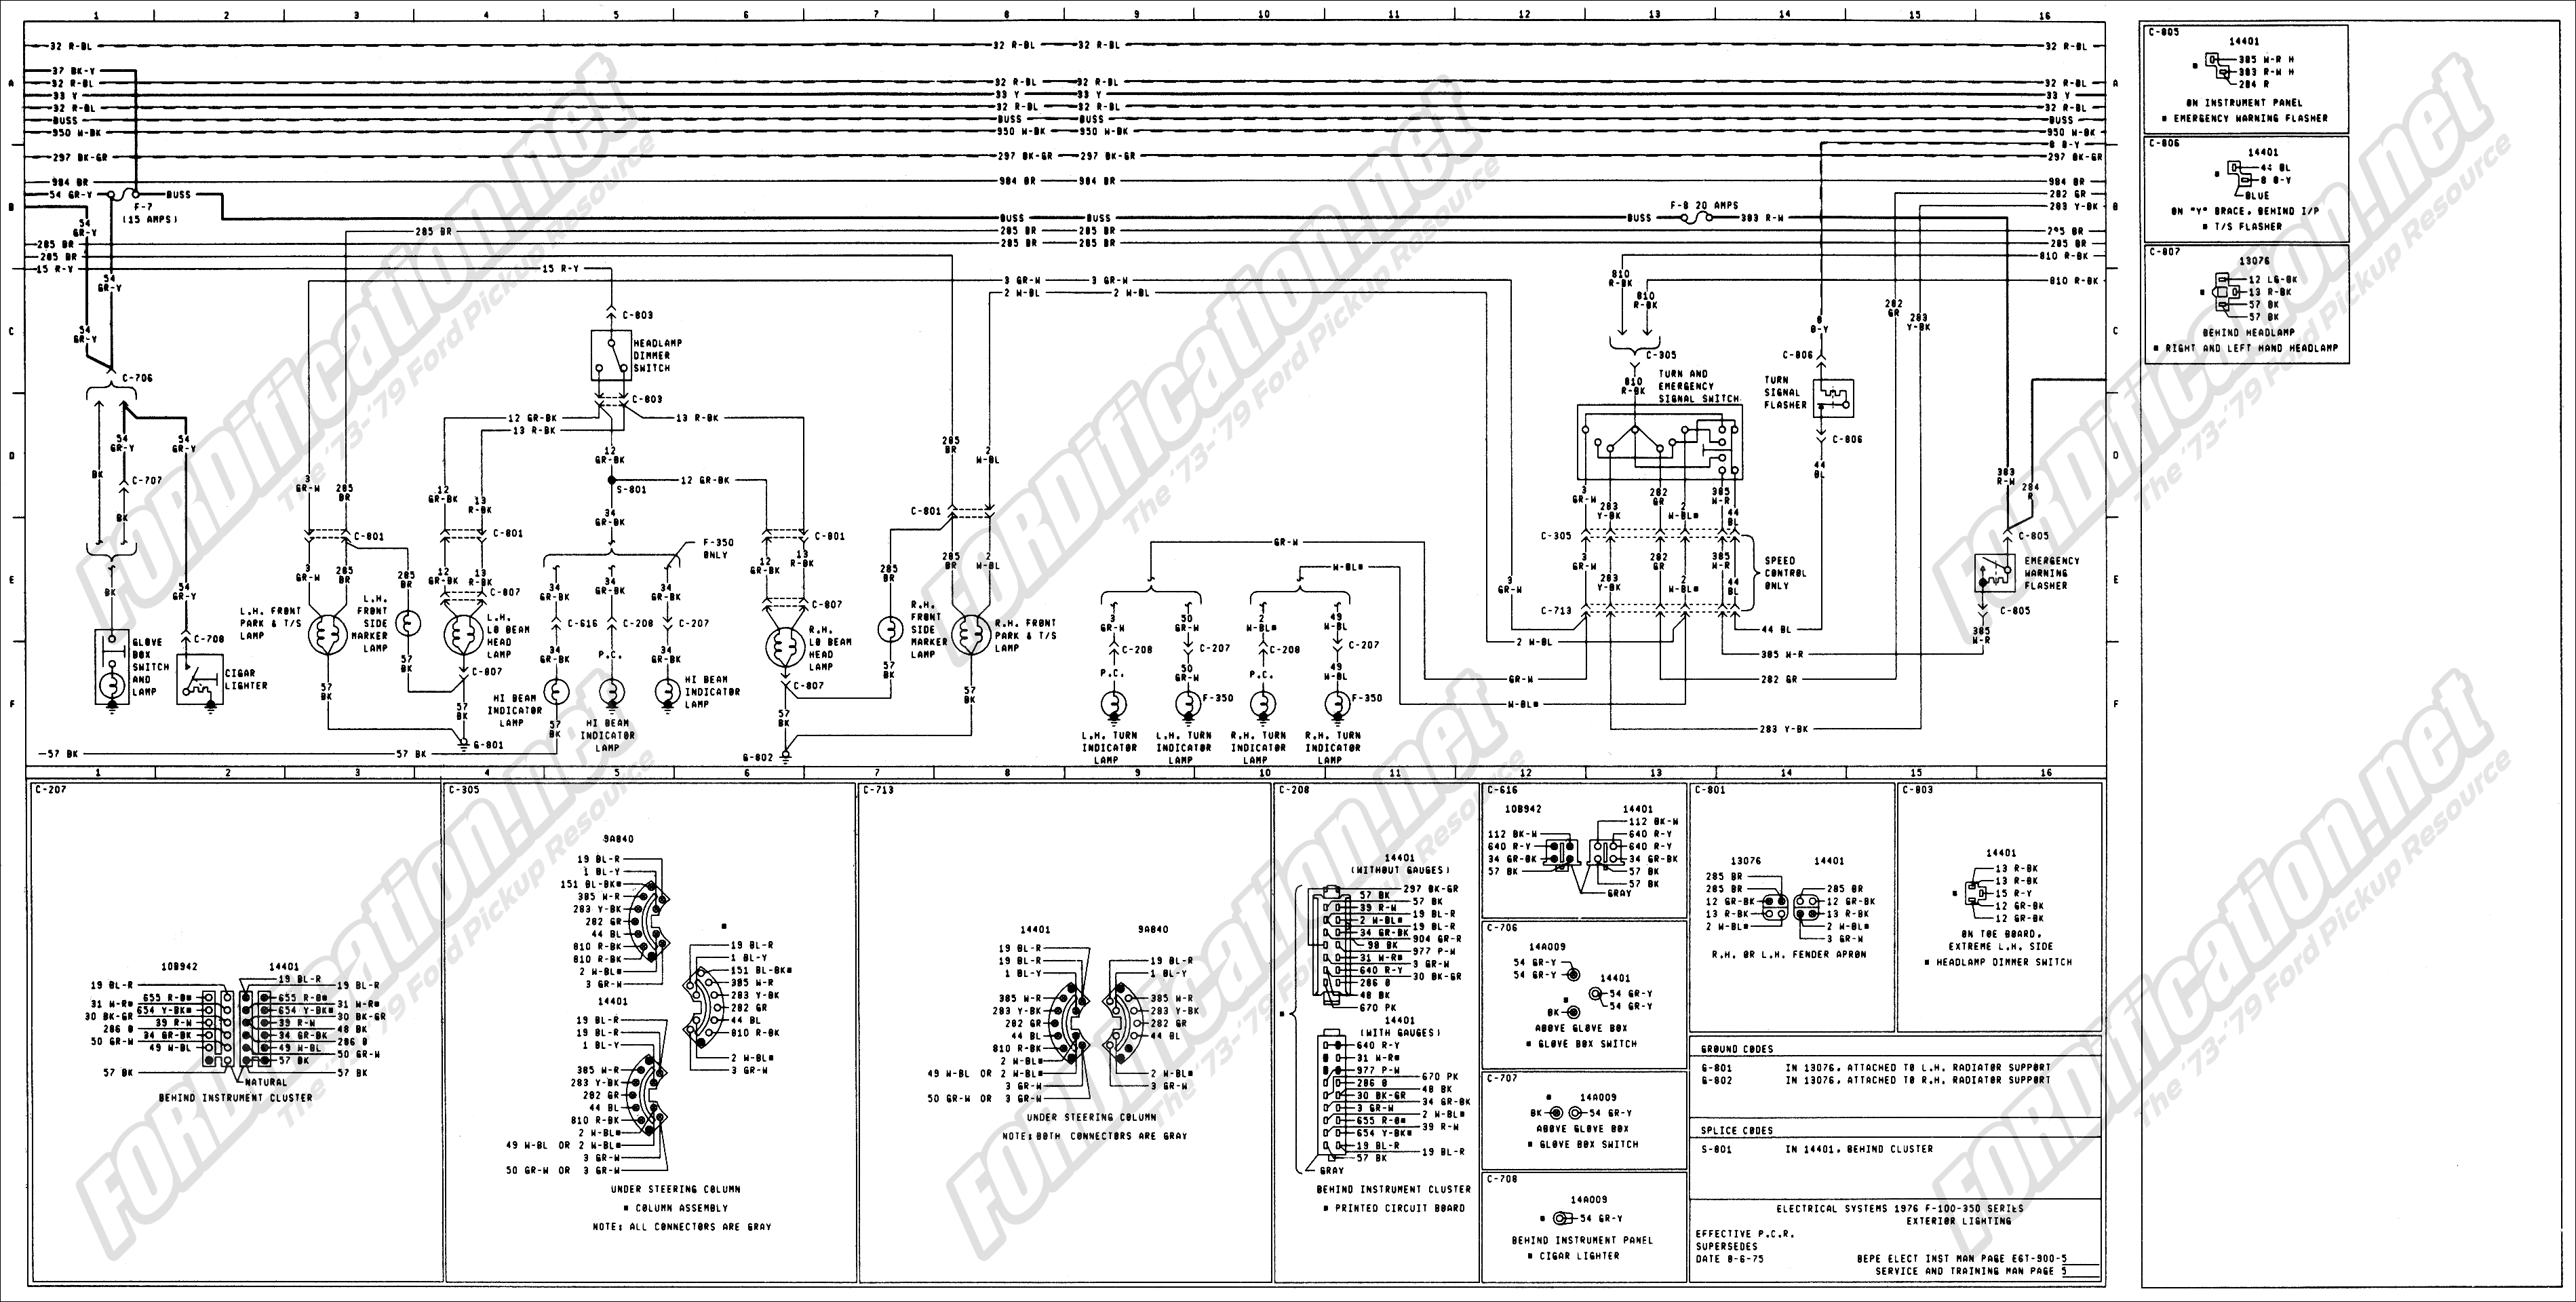 wiring_76master_5of9 1973 1979 ford truck wiring diagrams & schematics fordification net 77 ford f100 wiring diagram at cos-gaming.co